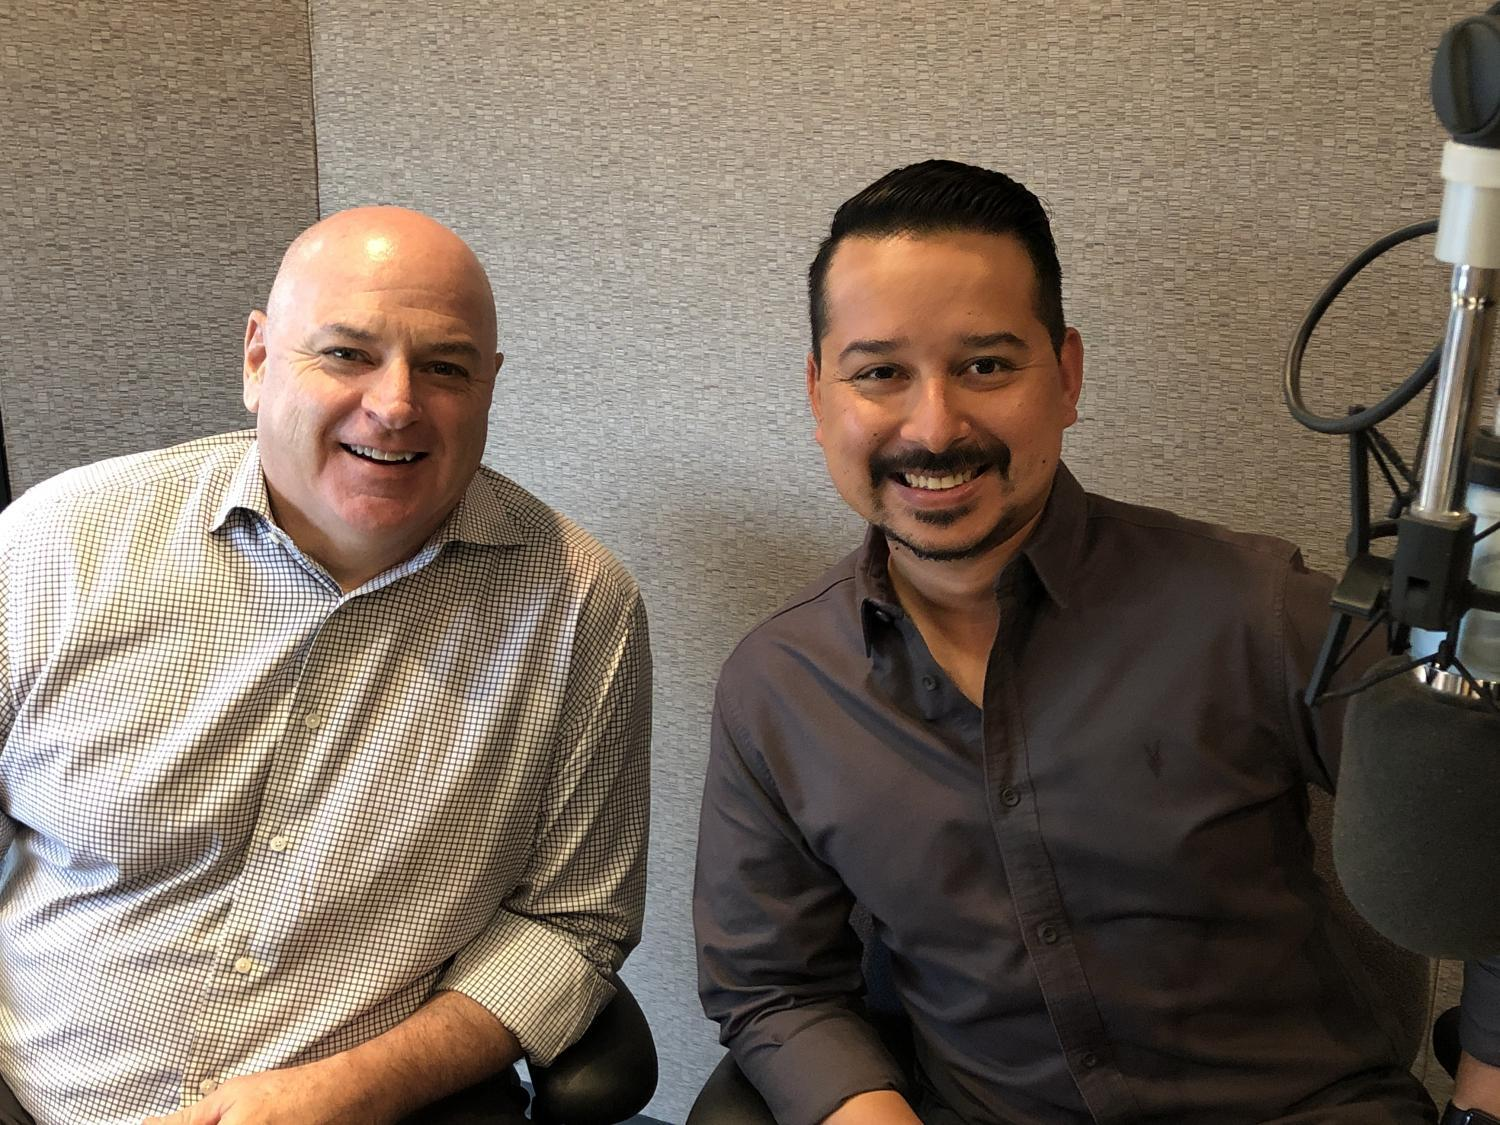 Chuck Coughlin and Roy Herrera in studio